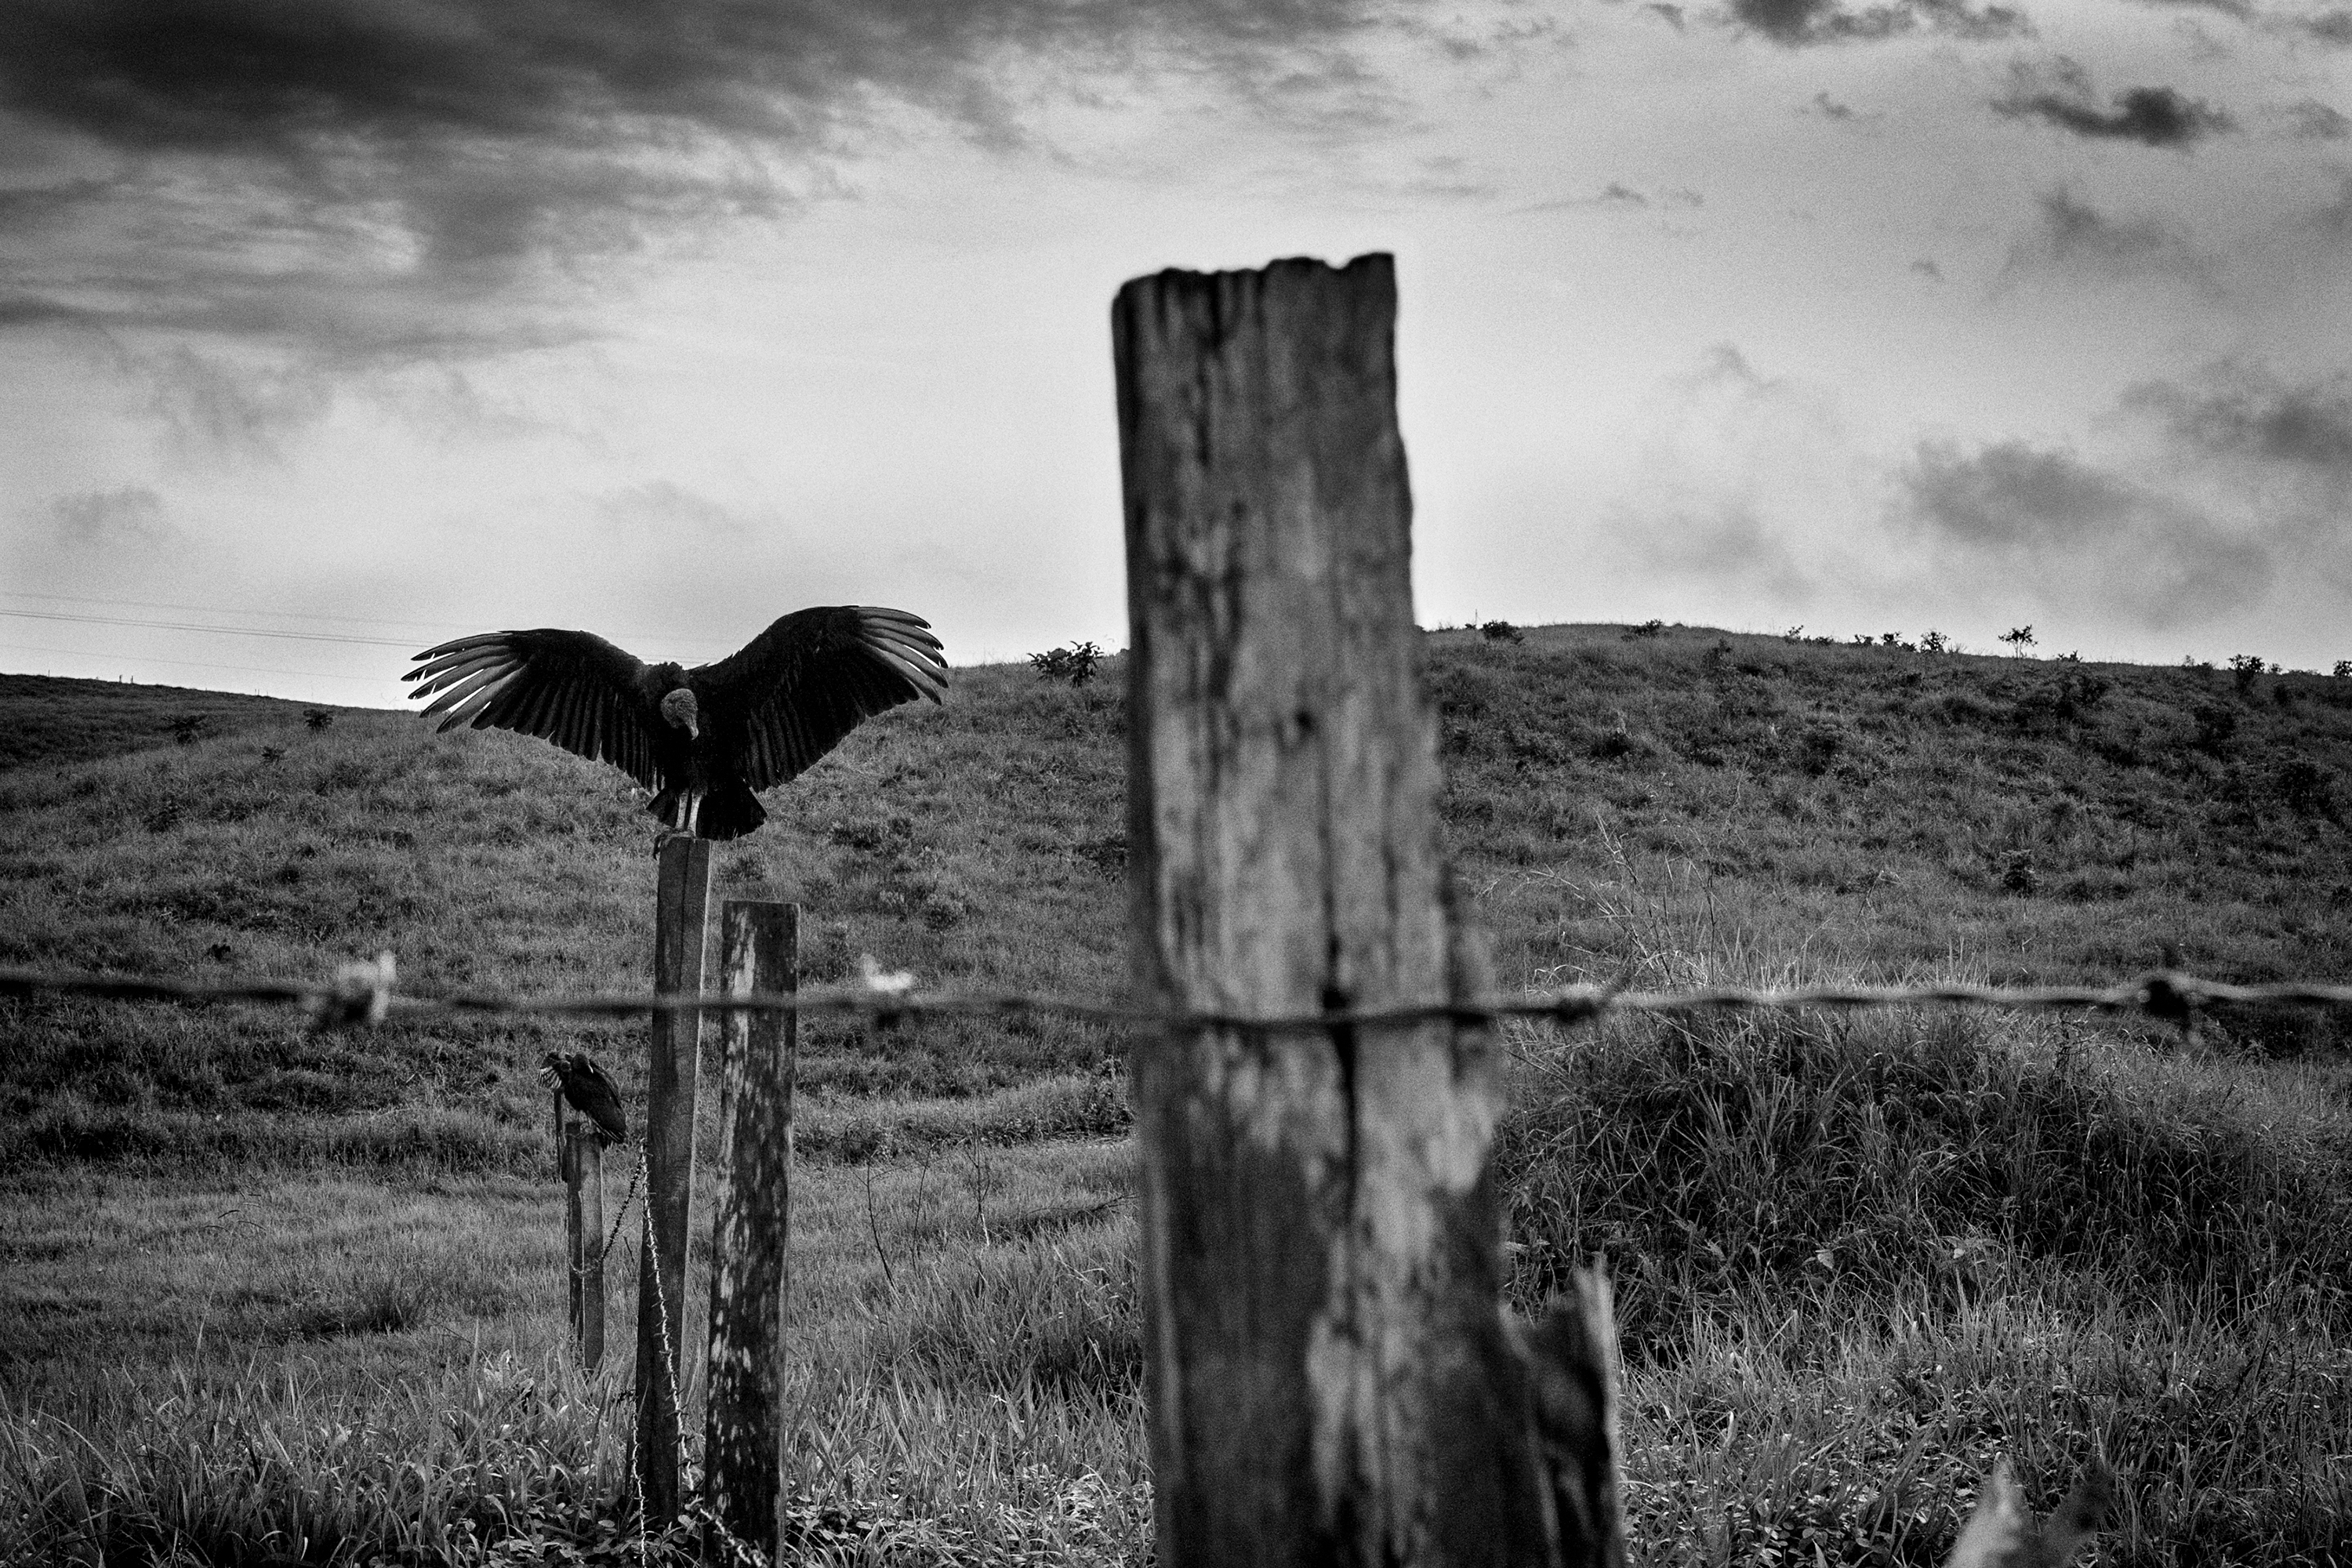 A vulture rests in the community of Mona  where there is evidence of the right-wing paramilitaries reemergence.                               The villages of Mona and Puerto Torres were the main operational centers of the paramilitaries in the region of Caqueta, Colombia. Prisoners suspected of collaborating with FARC were tortured at the church and local school, April 2016.